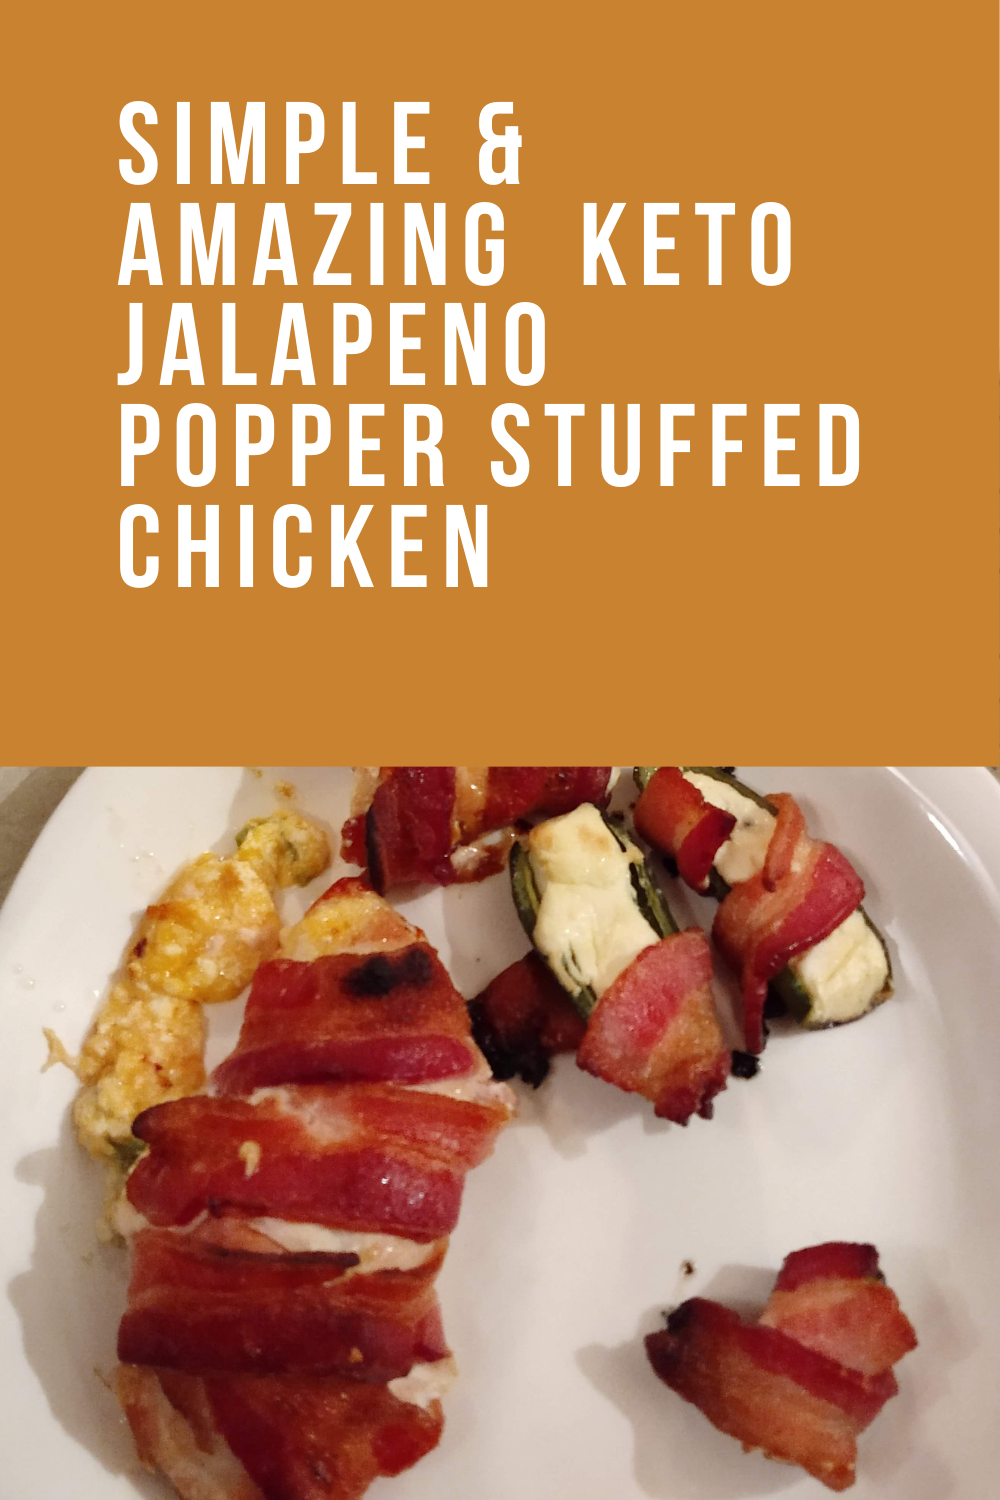 Poppin' Keto Stuffed Jalapeno Chicken